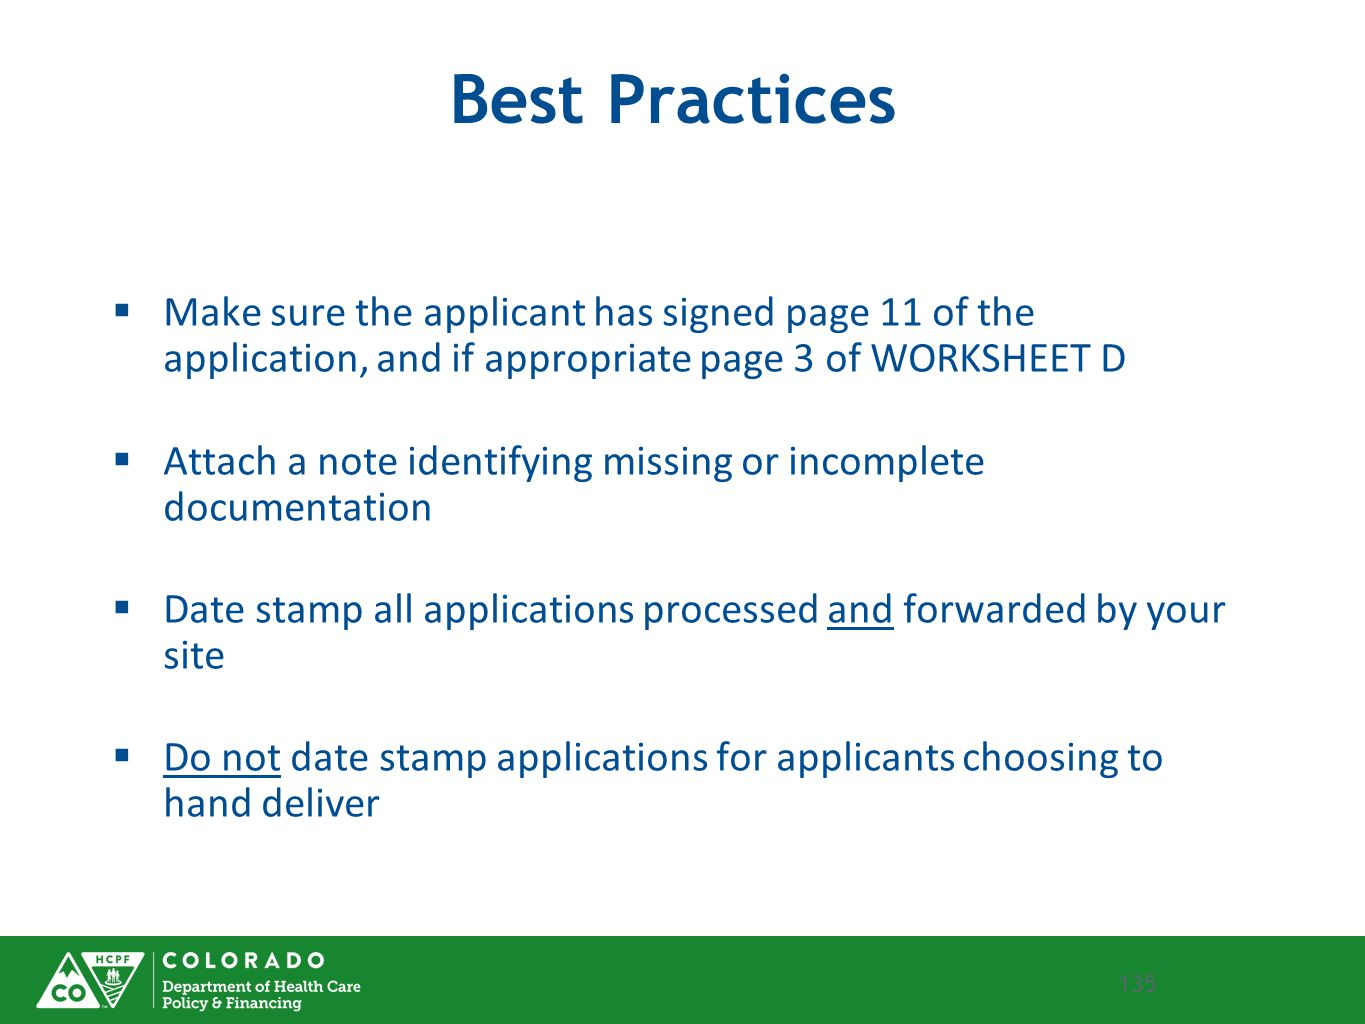 Best Practices Make sure the applicant has signed page 11 of the application, and if appropriate page 3 of WORKSHEET D.